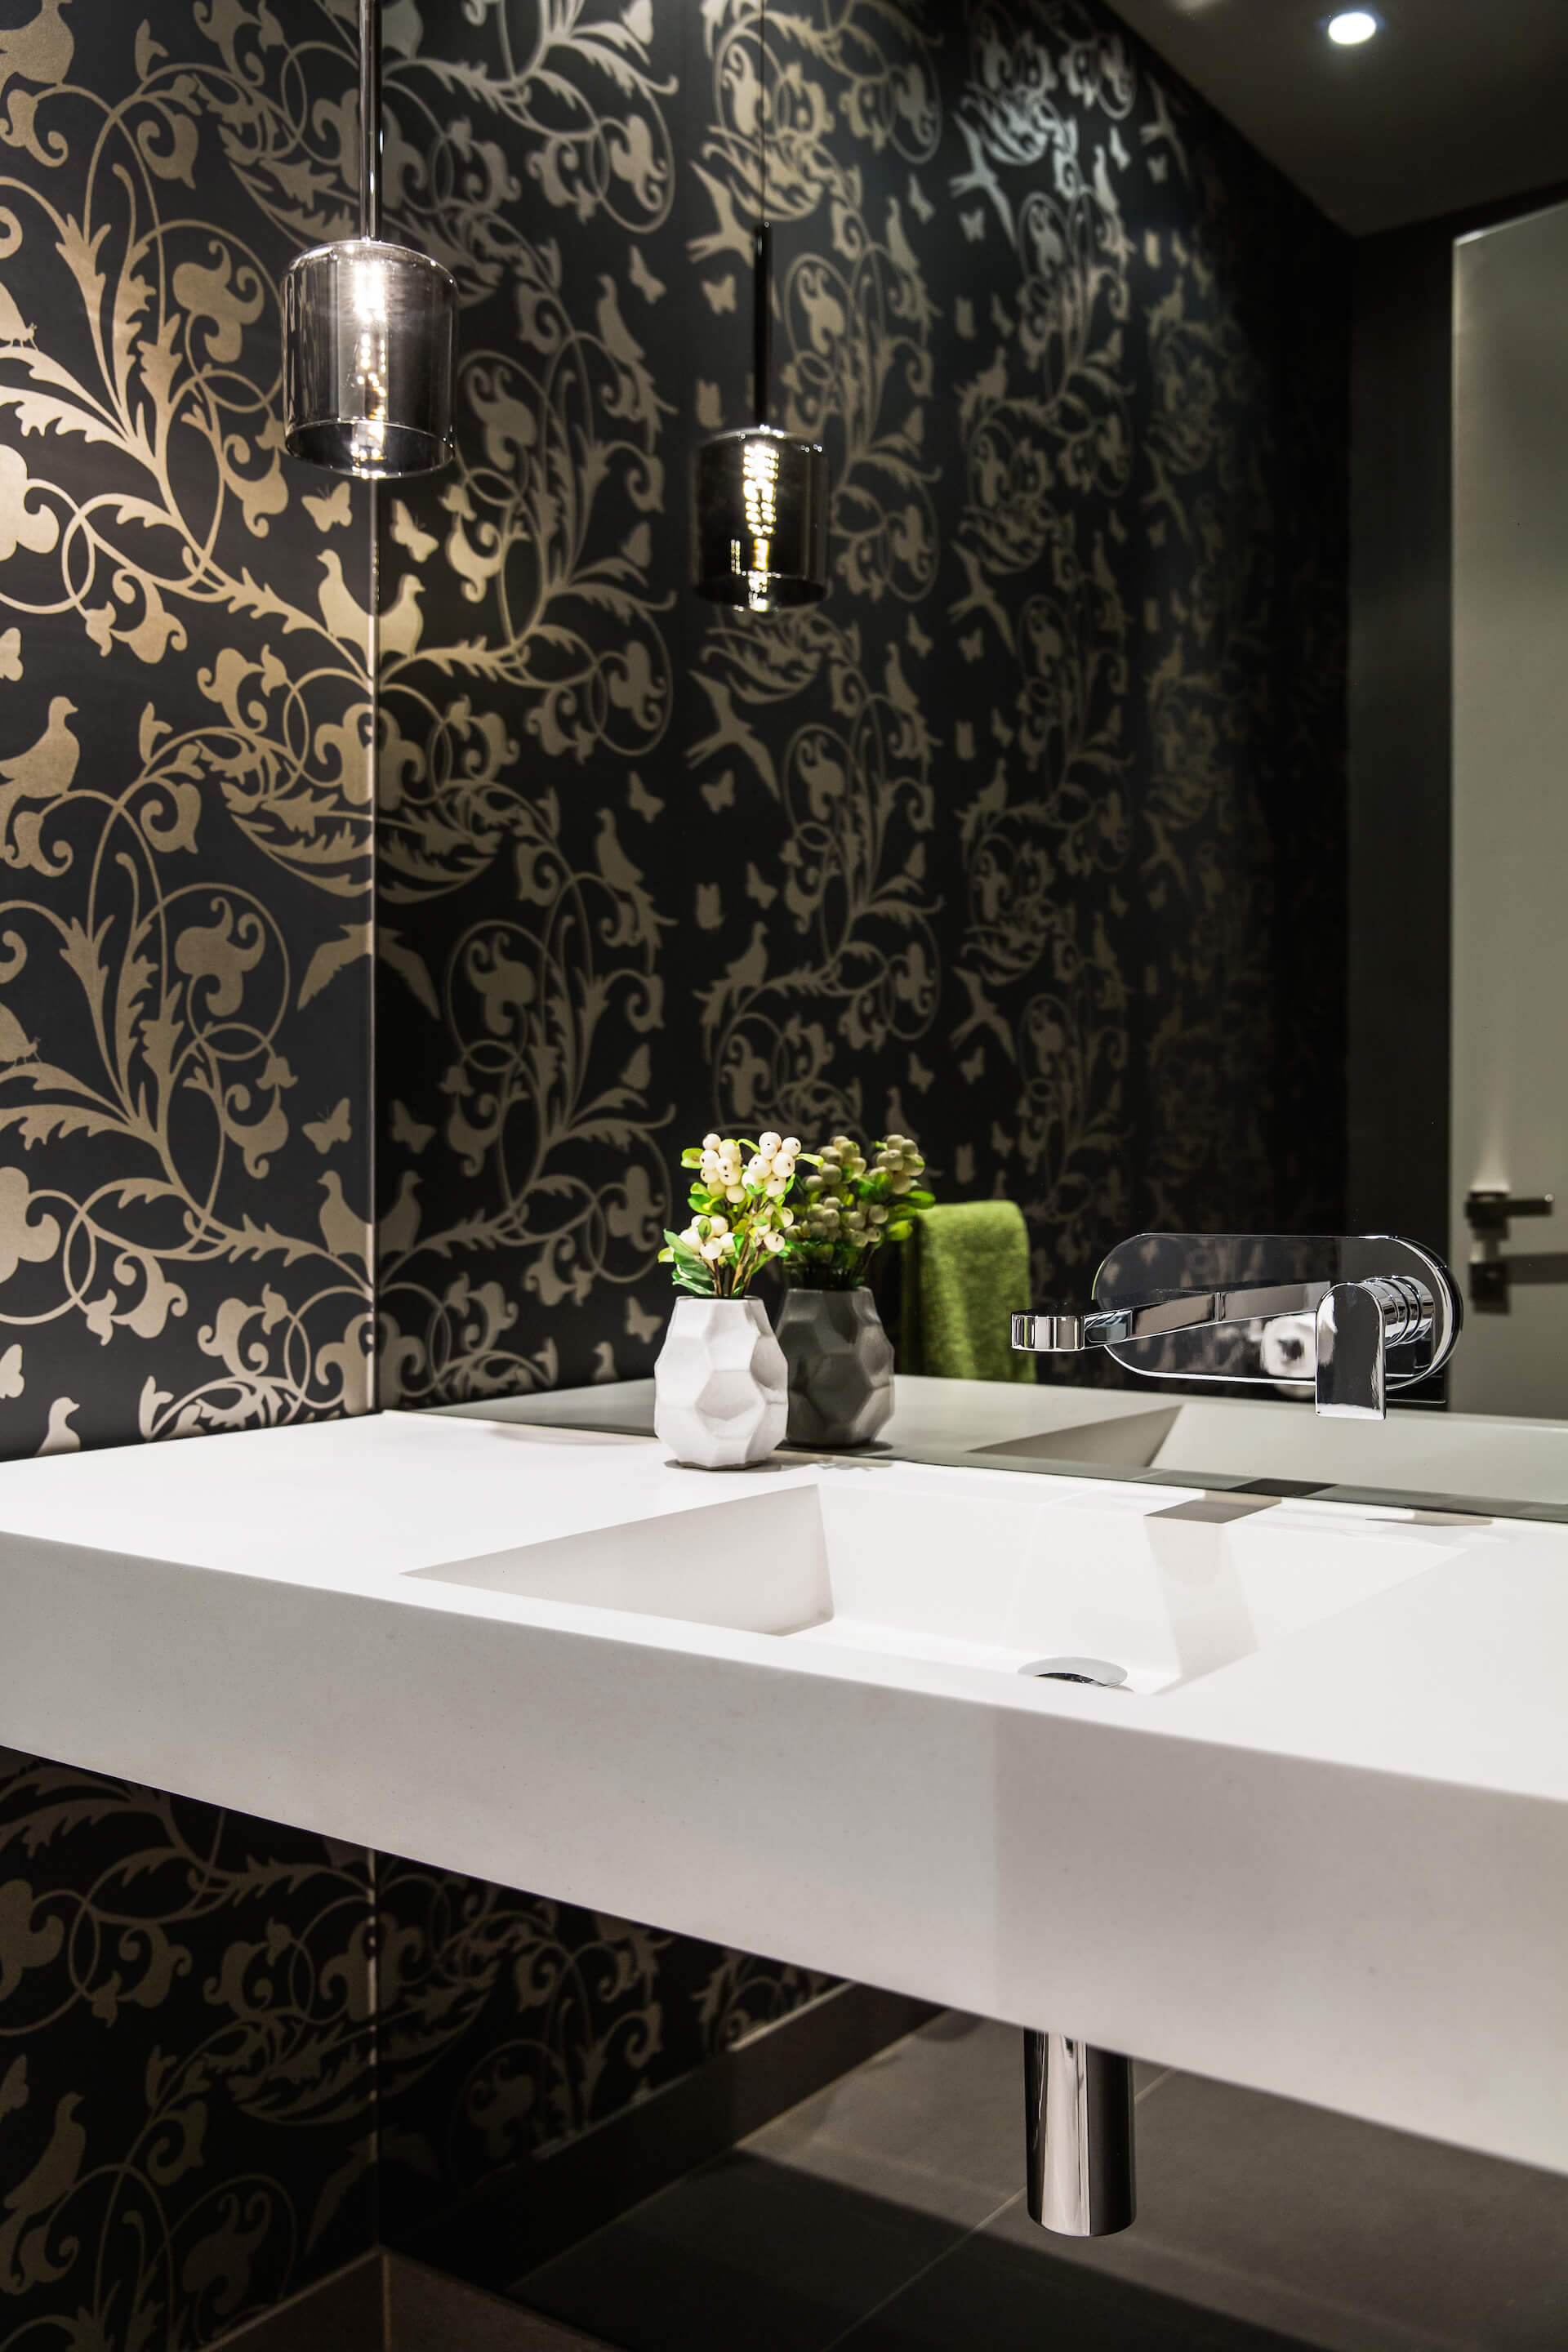 Powder room features a singular white floating vanity with modern chrome tap built into the mirror. Gold patterned dark walls pair with the reflective drum lighting.